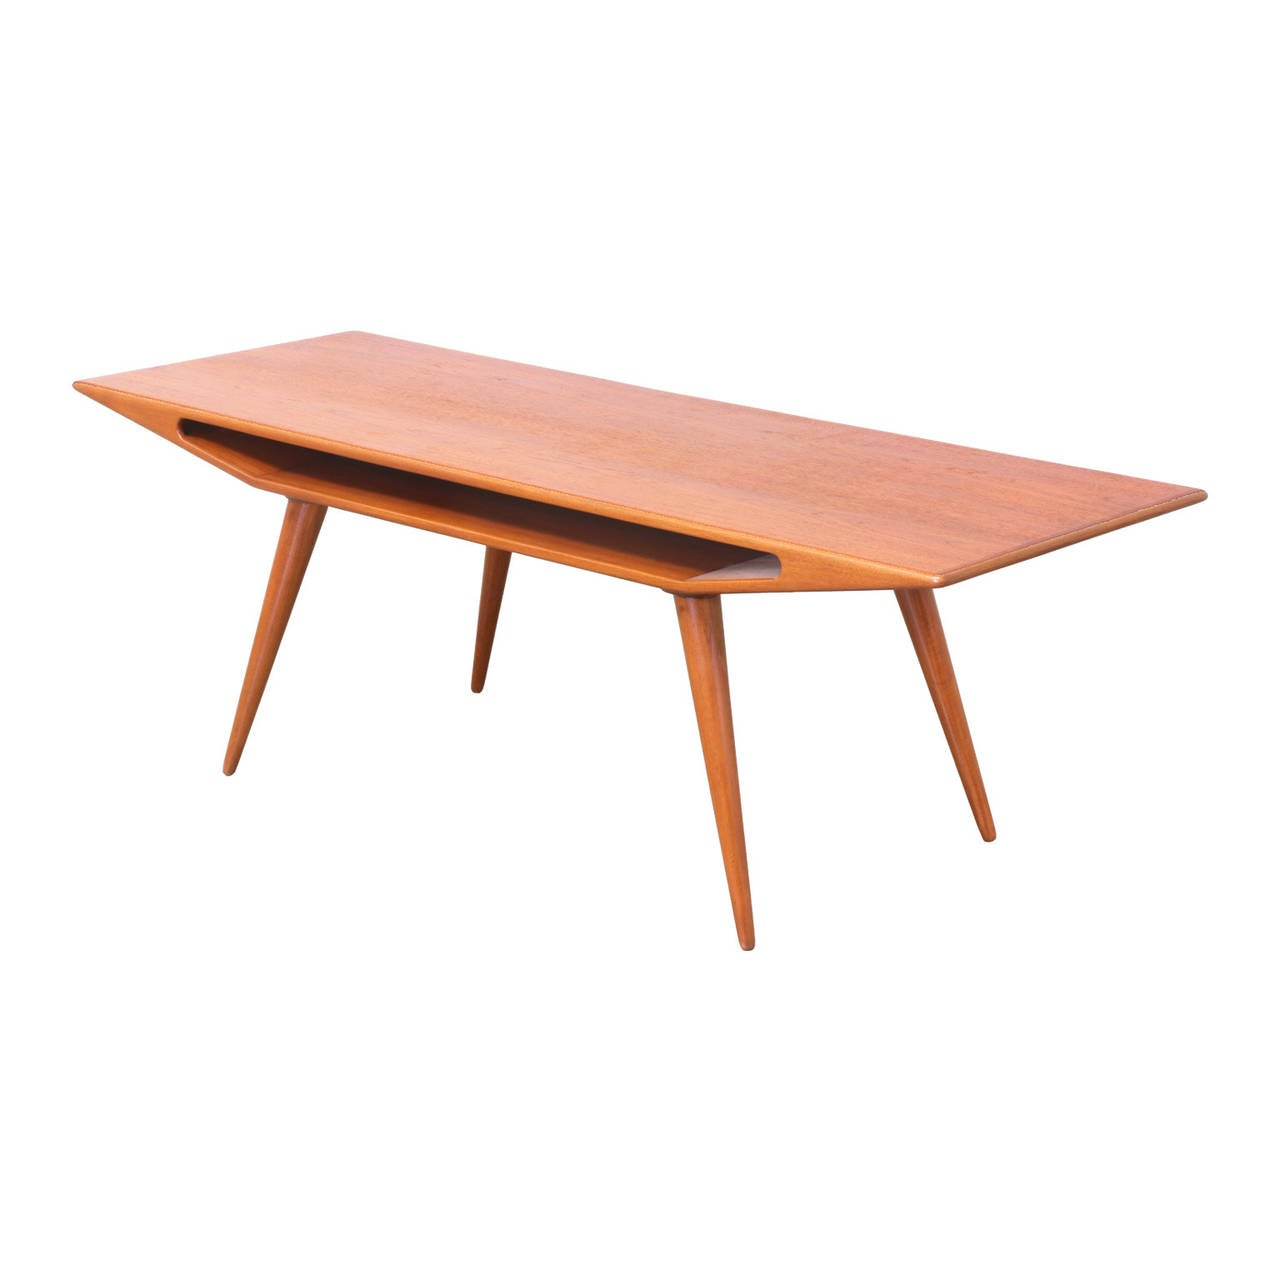 Danish modern smile teak coffee table at 1stdibs Modern teak coffee table